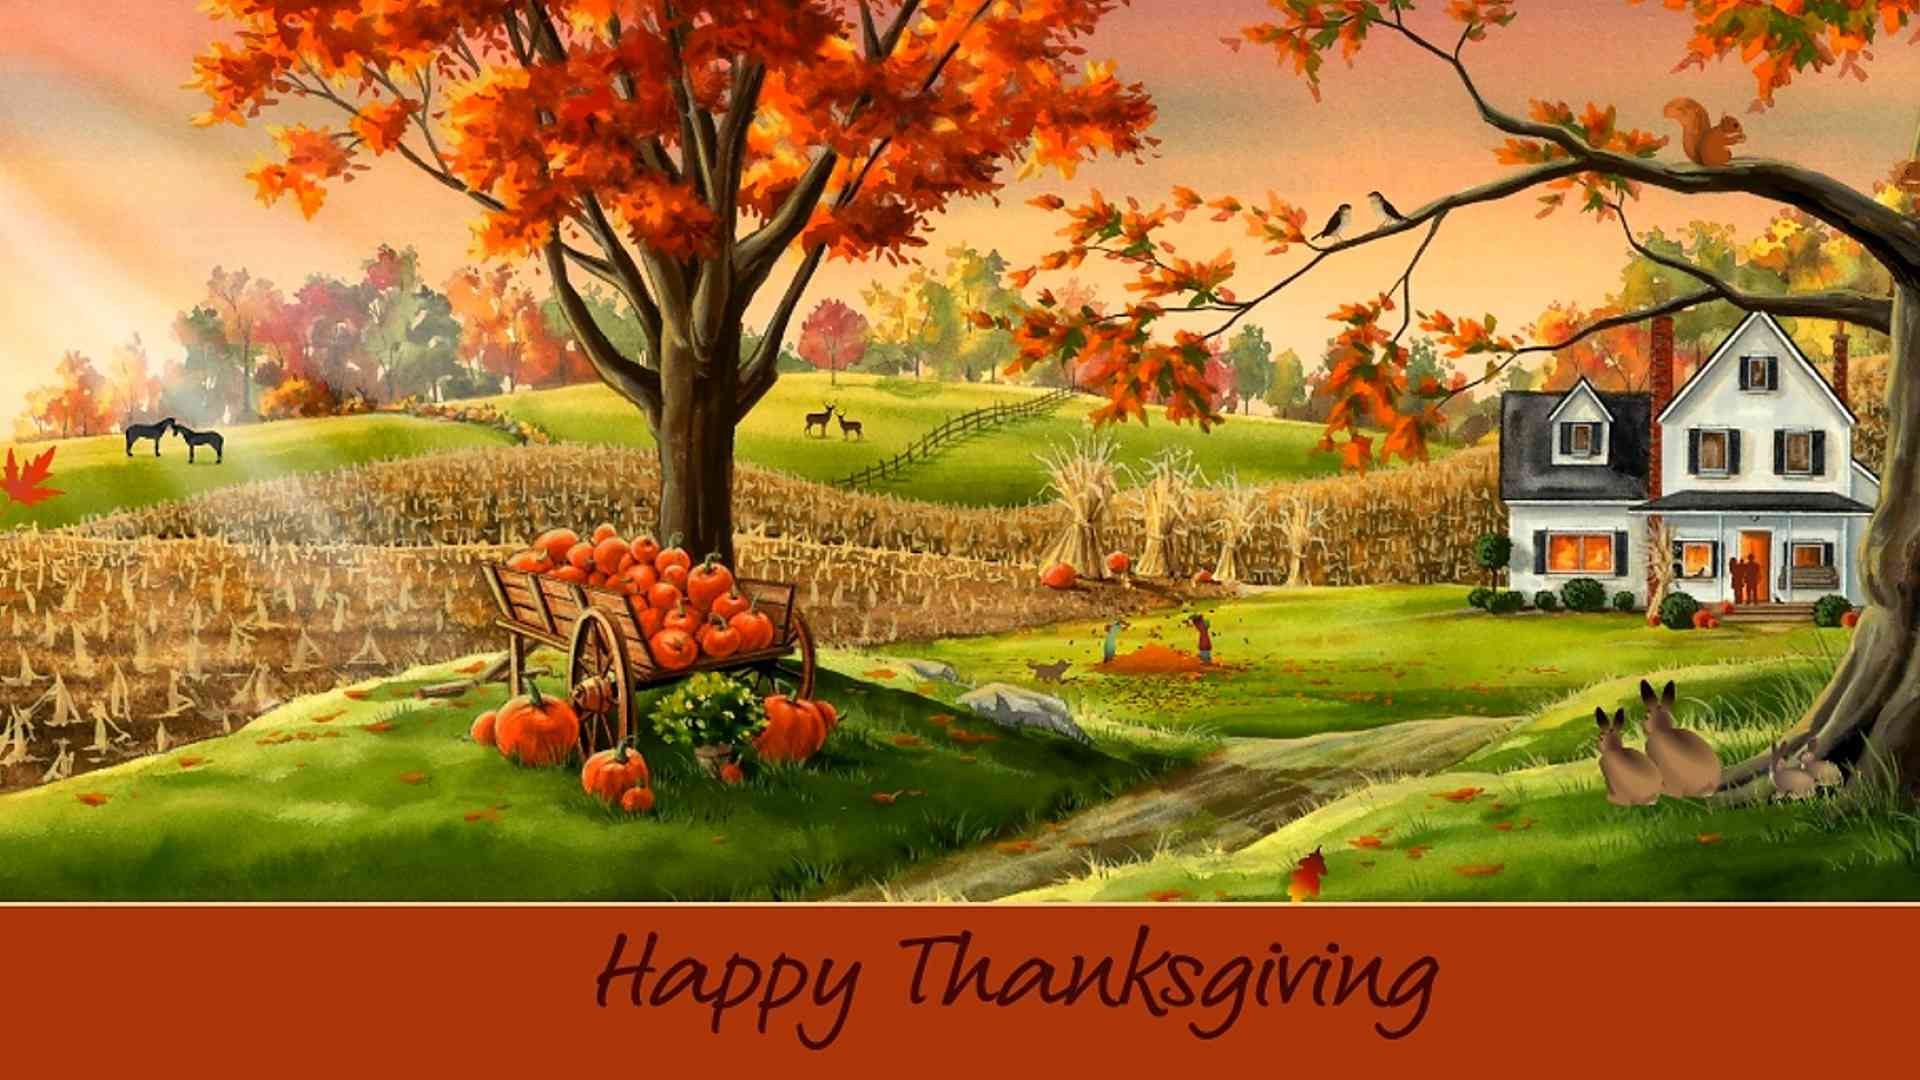 Thanksgiving Beautiful Hd Wallpaper